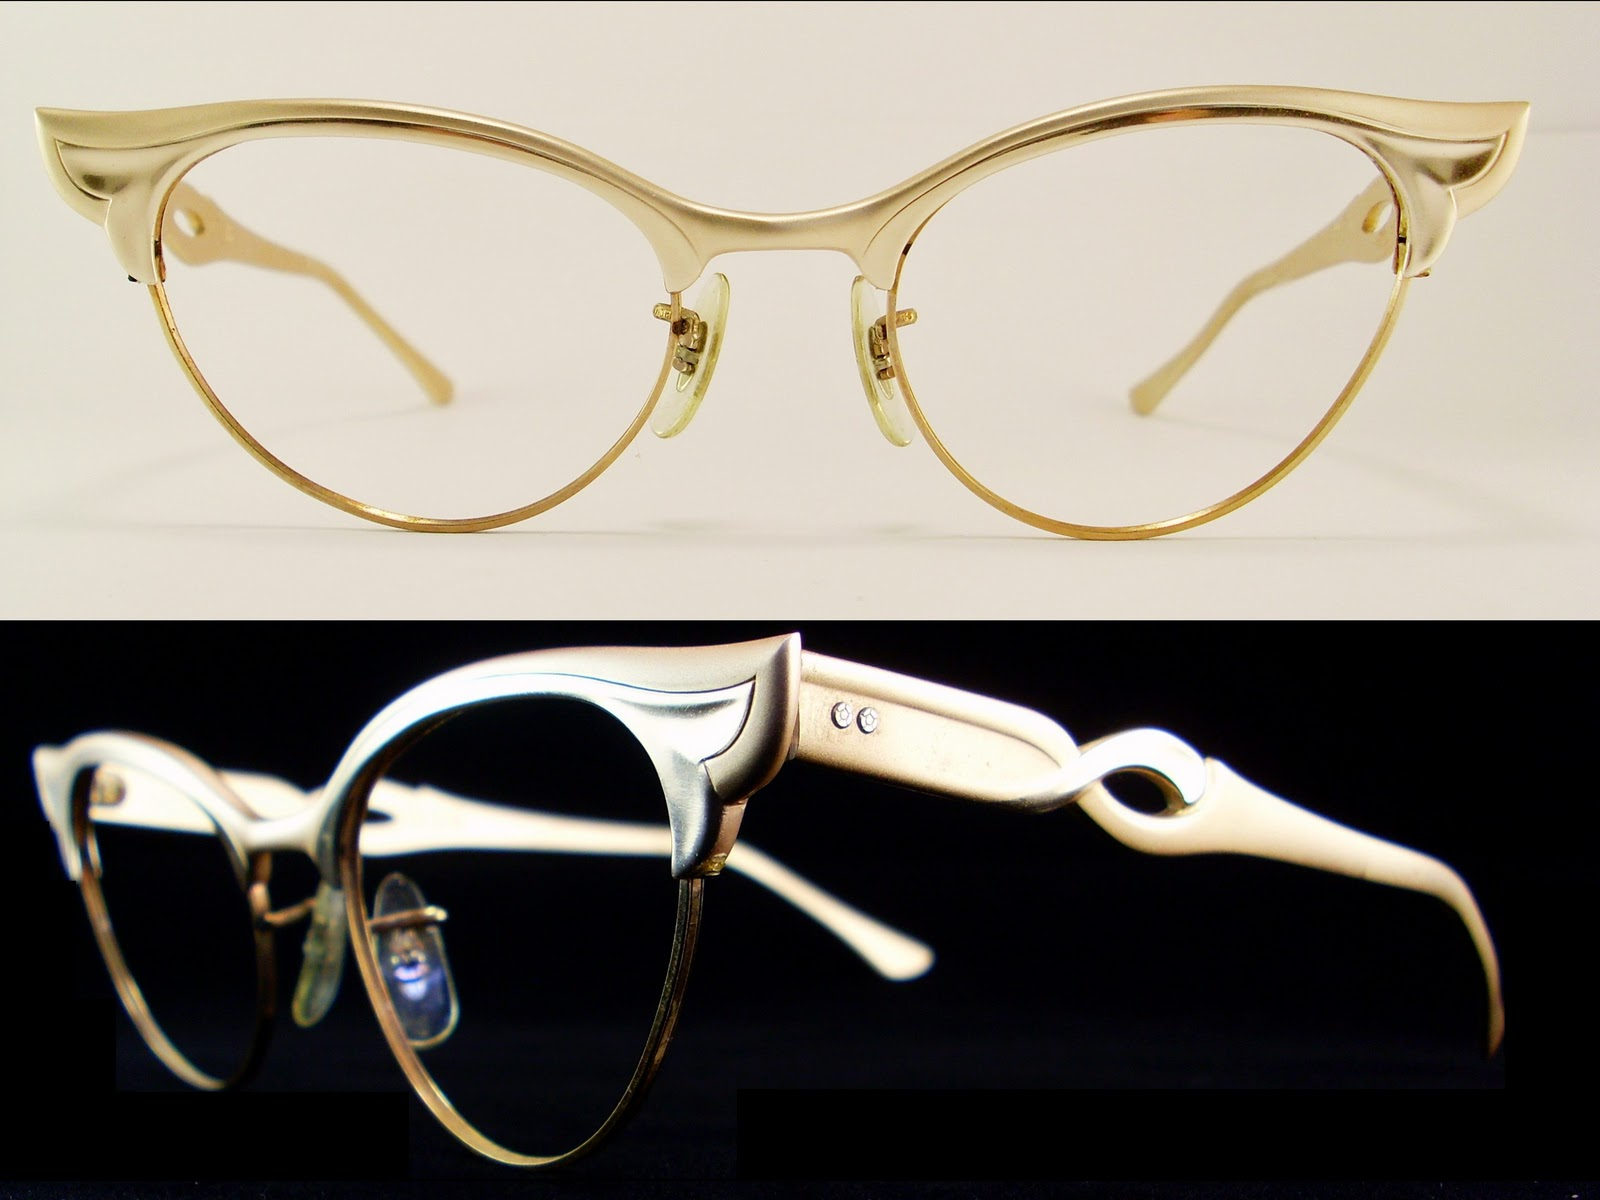 Magnificent Gold Frame Glasses Ornament - Picture Frame Ideas ...